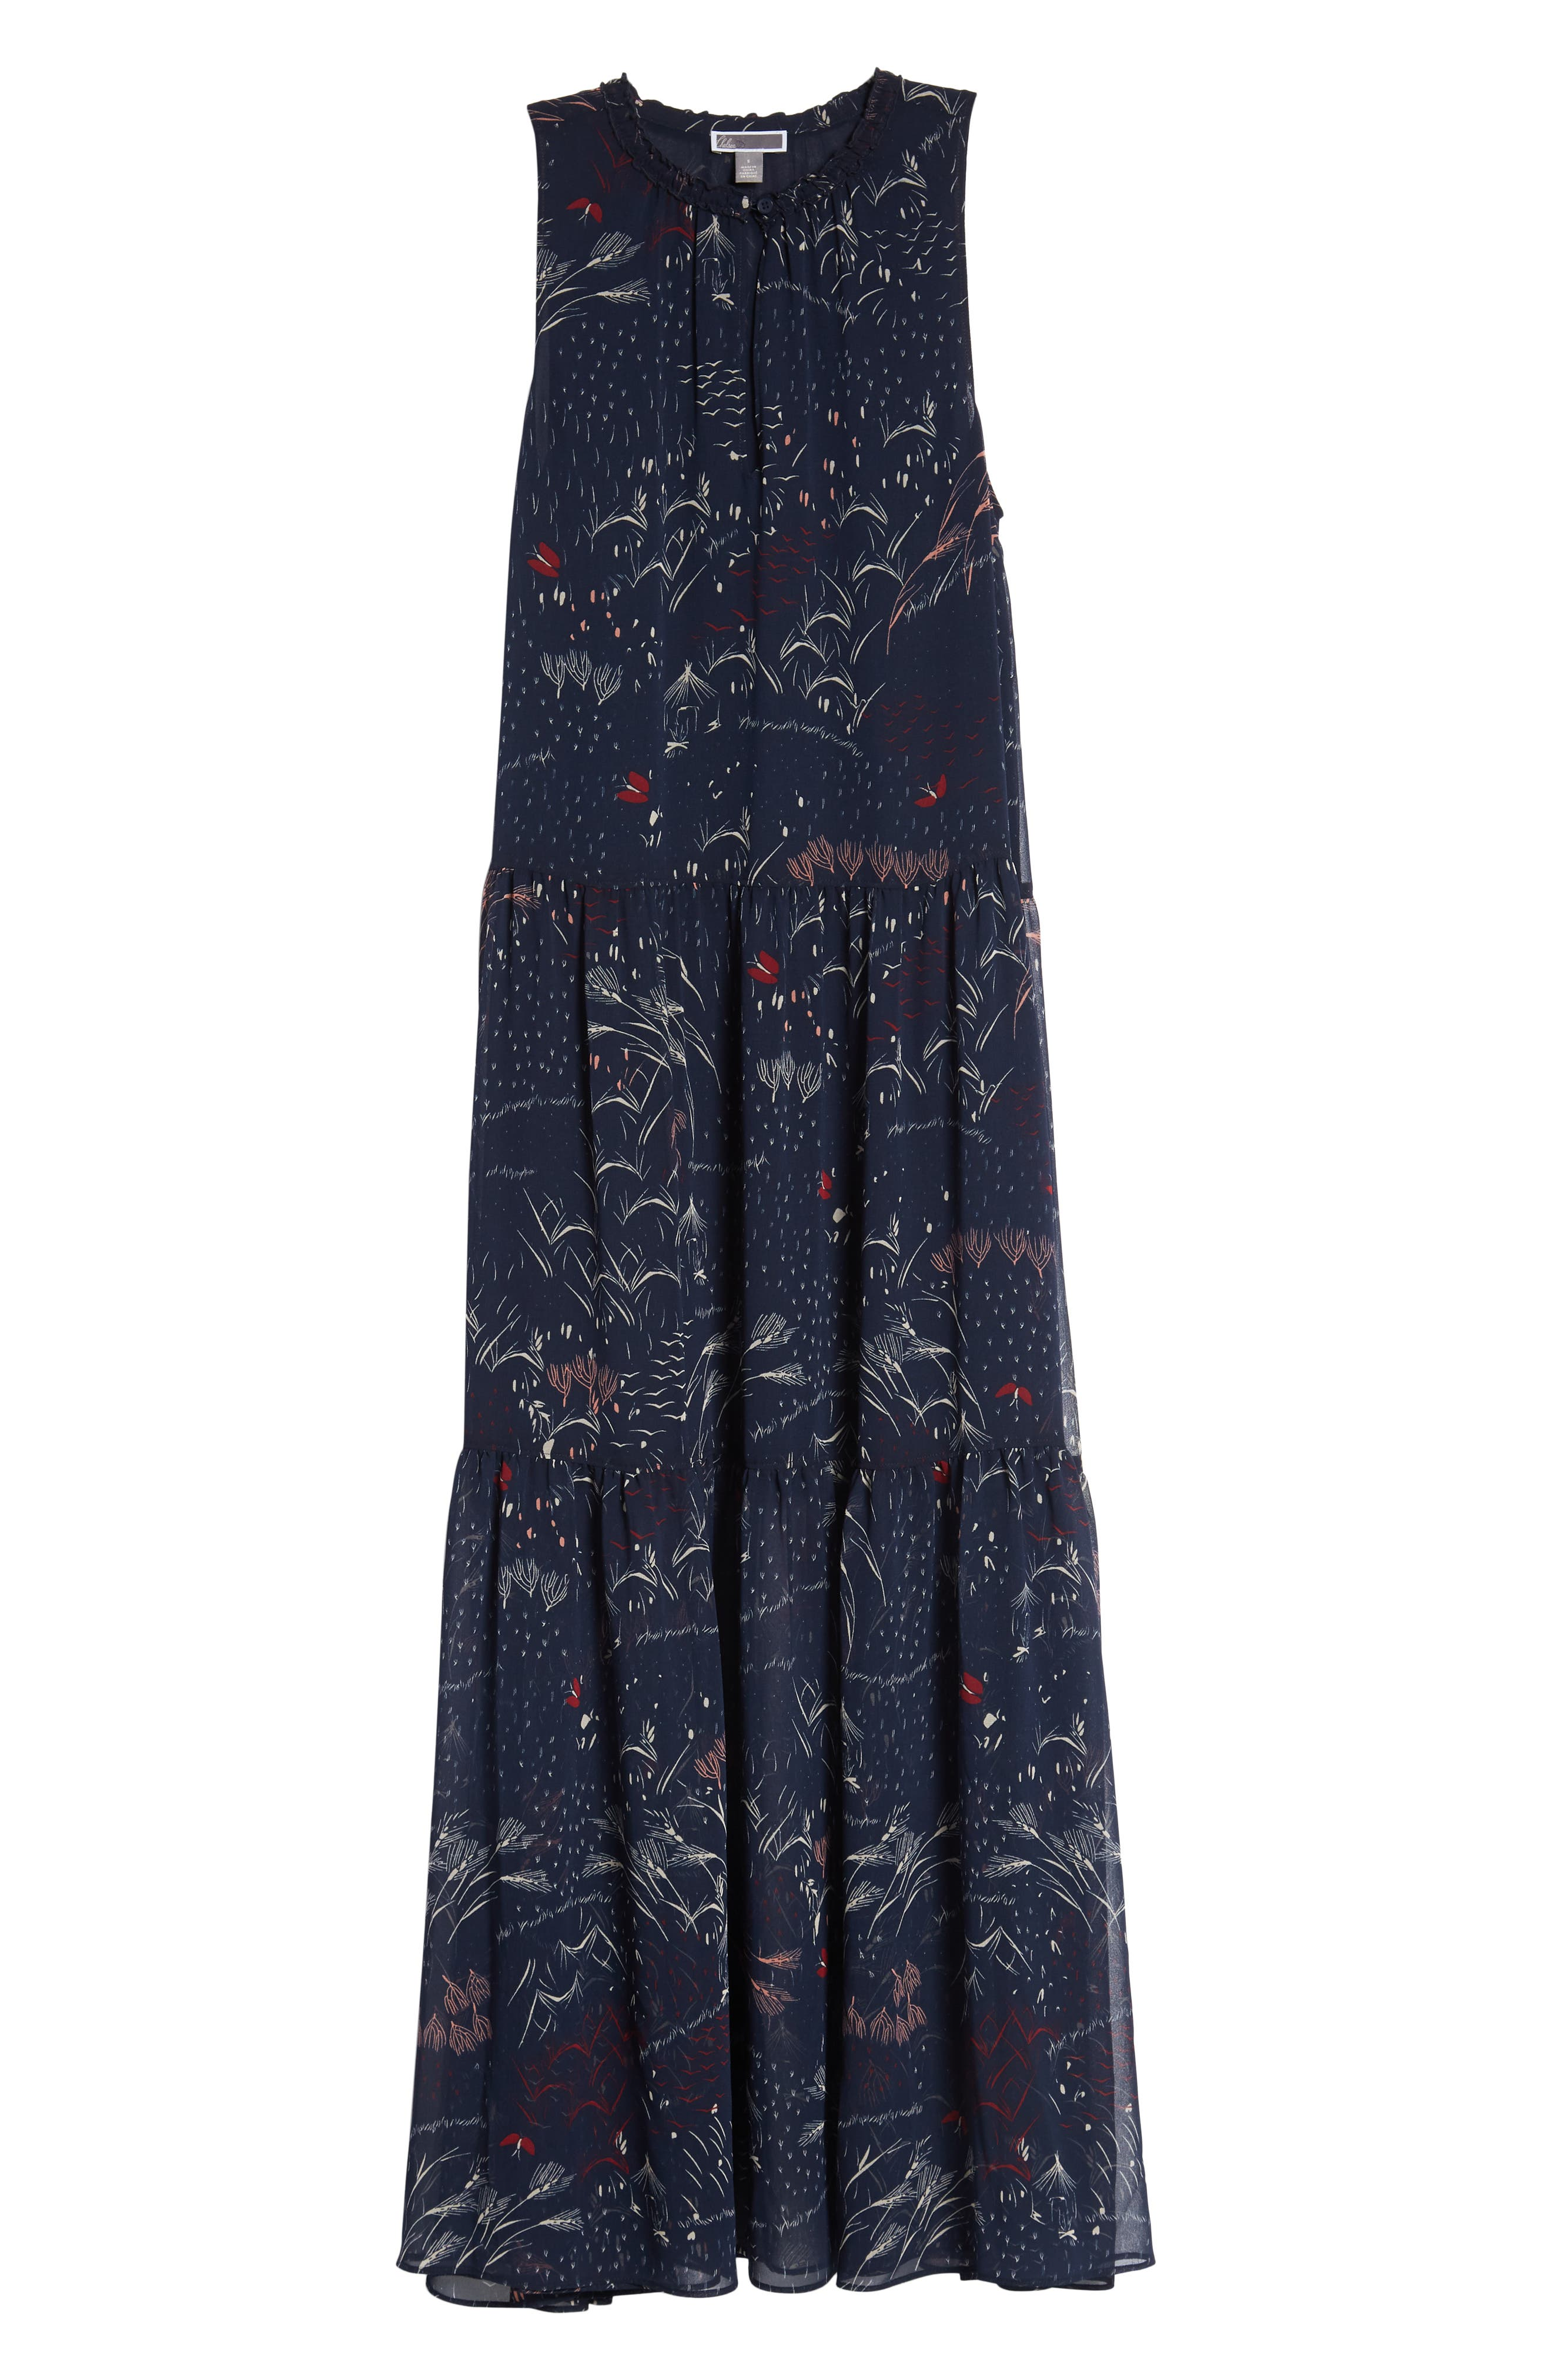 Print Tiered Maxi Dress,                             Alternate thumbnail 7, color,                             Navy Blazer Feather Grass